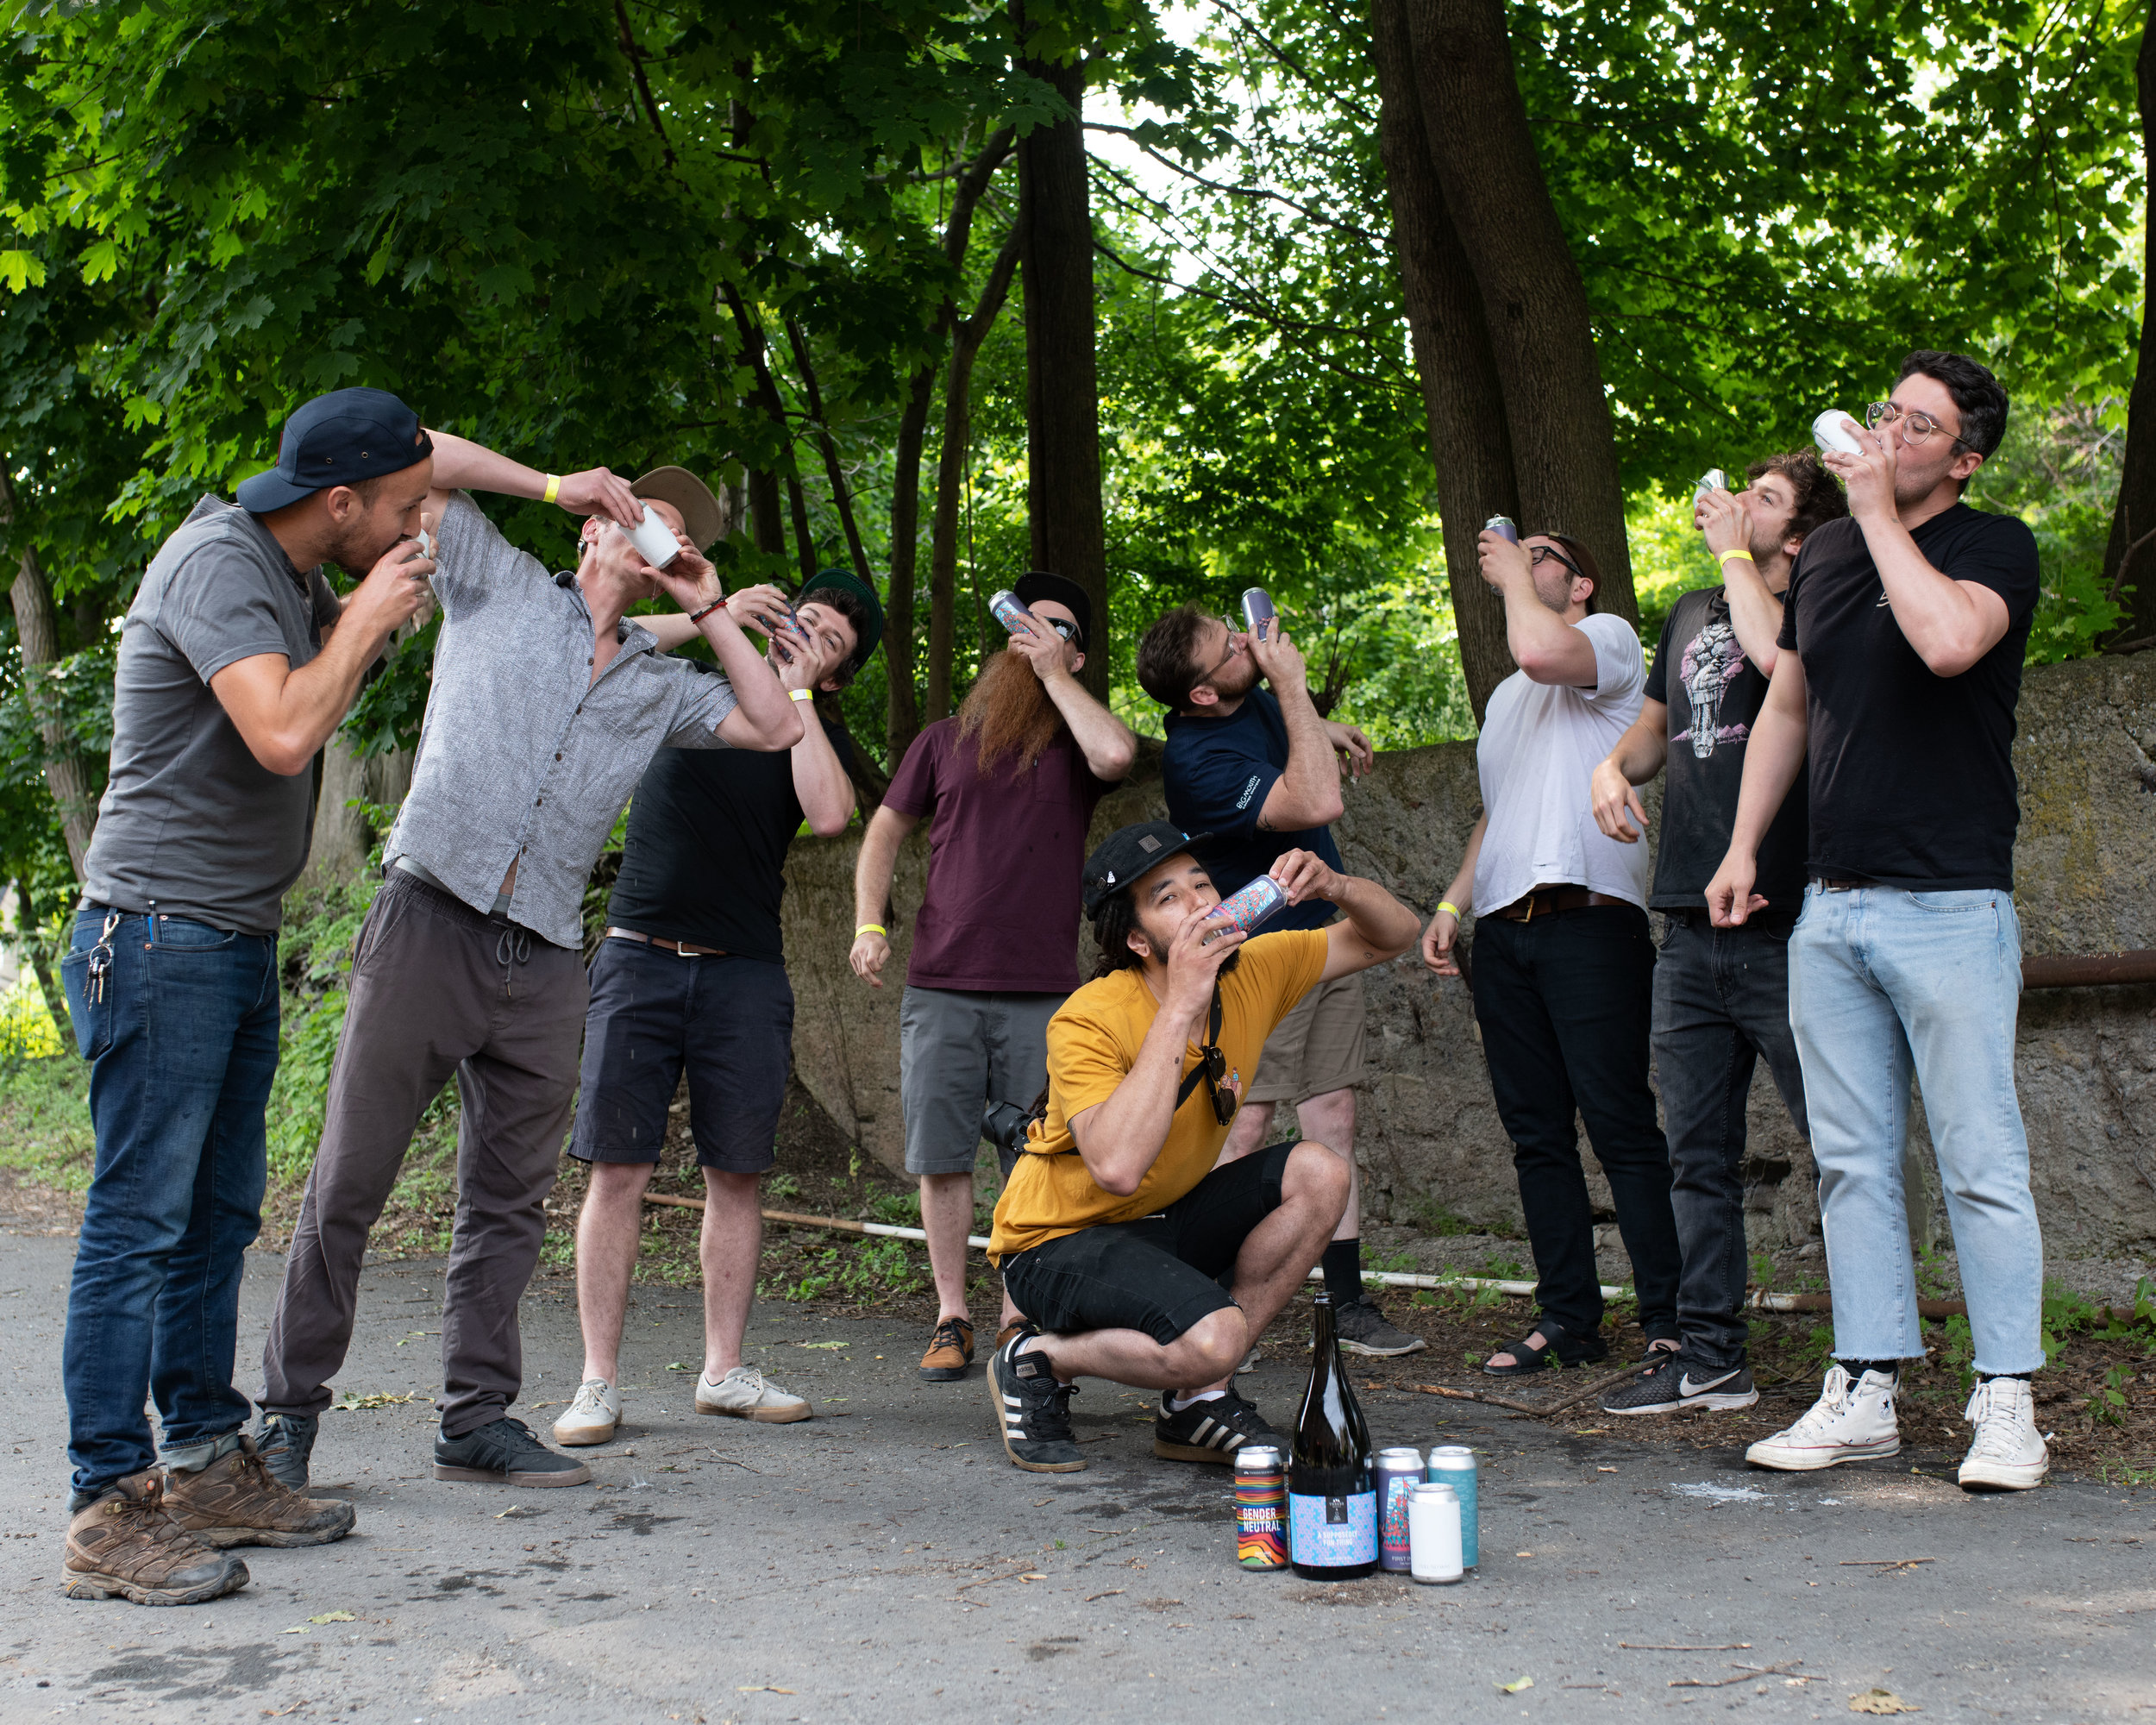 The Union of Lager Lads in The City of Beacon, New York.